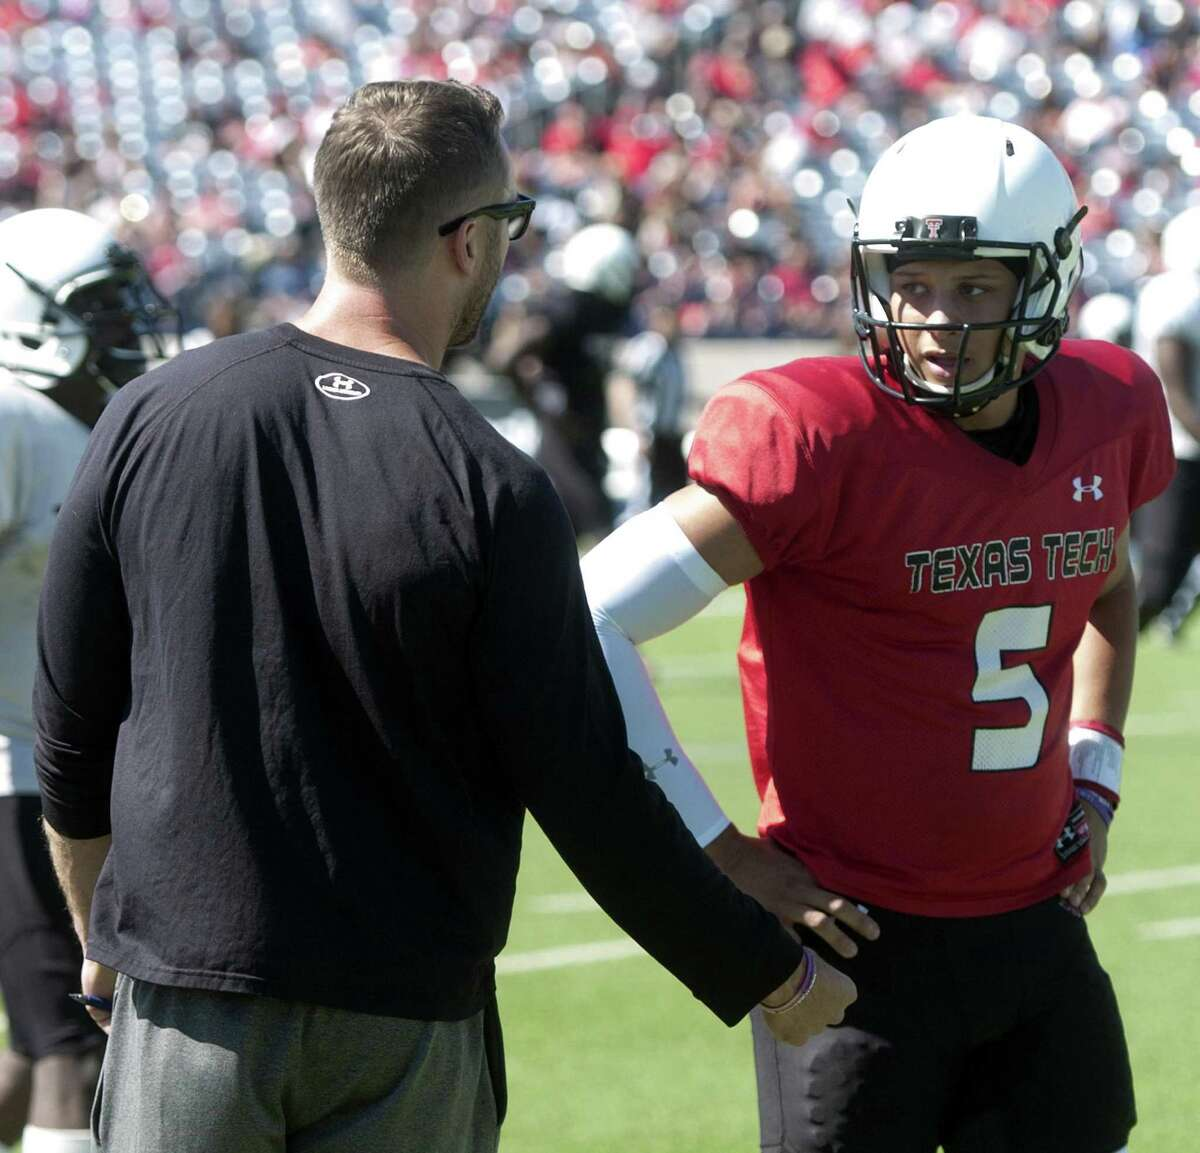 Texas Tech head coach Kliff Kingsbury talks with quarterback Patrick Mahomes during the spring scrimmage on March 28, 2015, at Grande Communications Stadium in Midland.